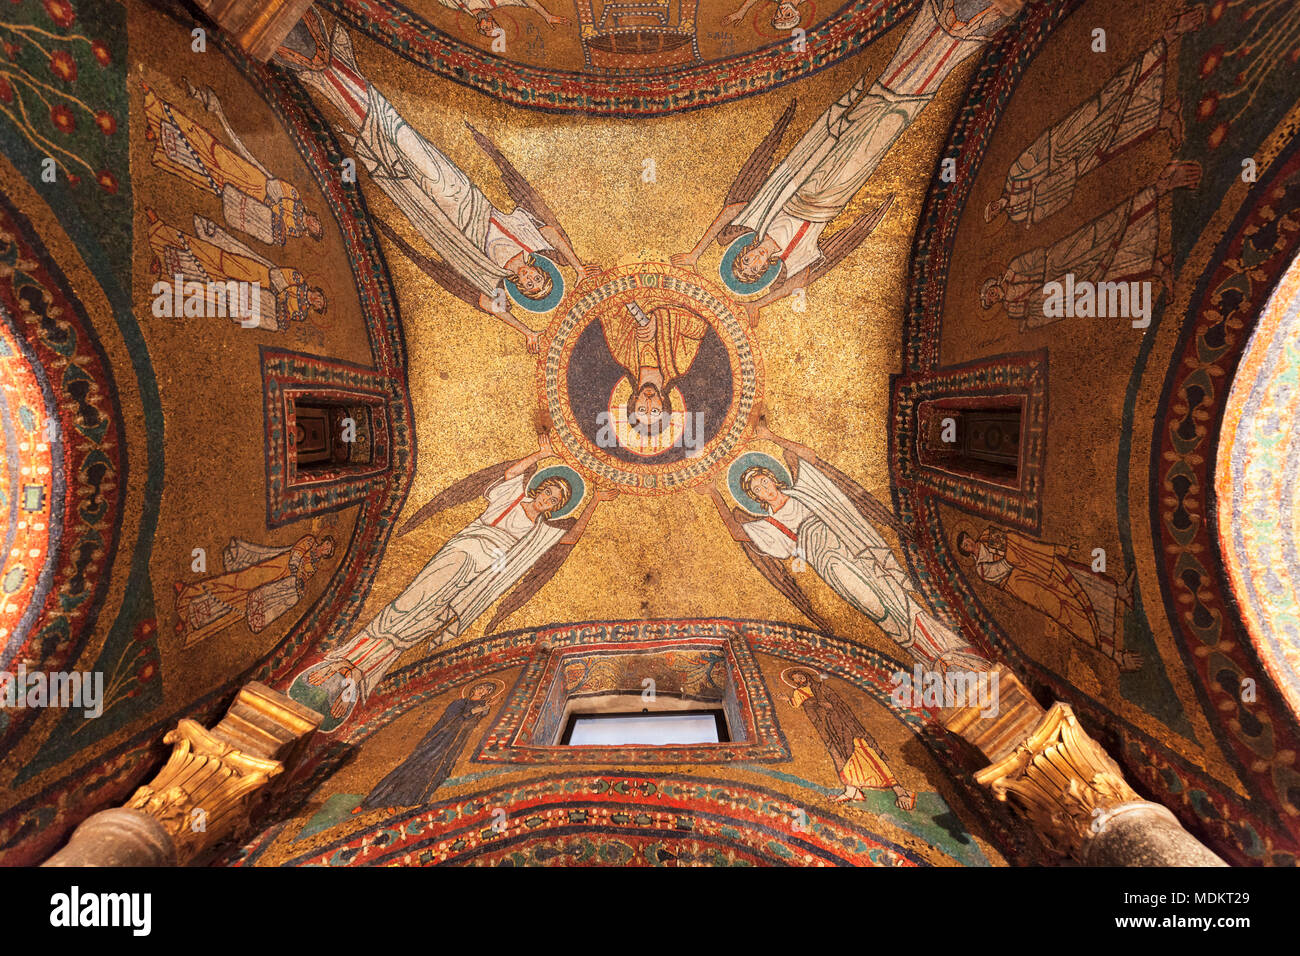 Interior view, ceiling vault, mosaic in the dome of Zeno Chapel, Basilica Santa Prassede, Rome, Lazio, Italy - Stock Image